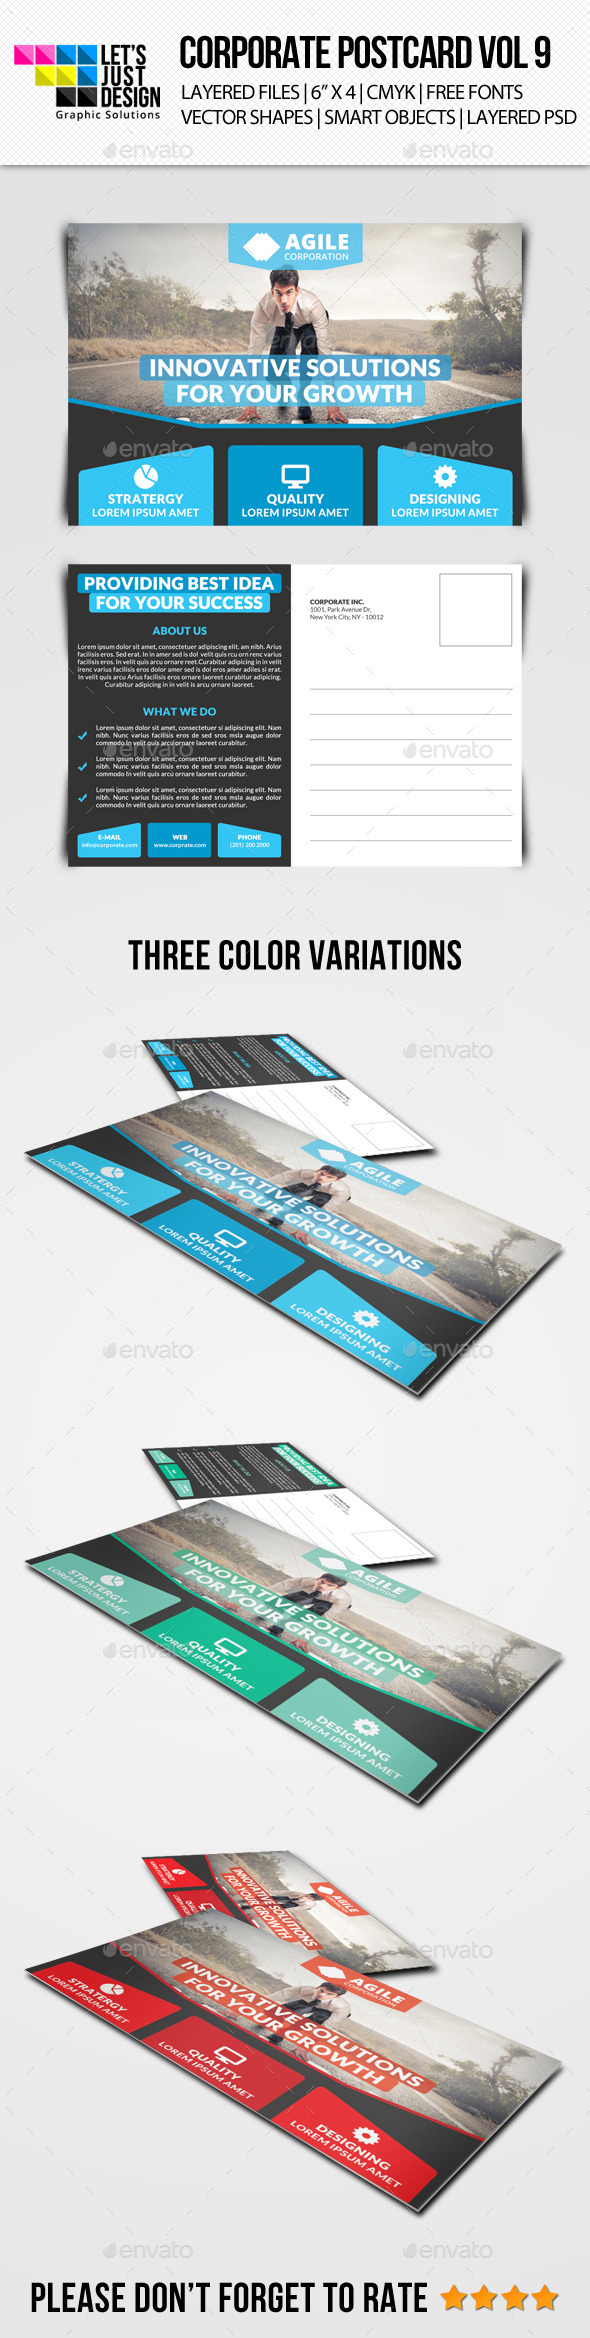 GraphicRiver Corporate Postcard Template Vol 9 10746511